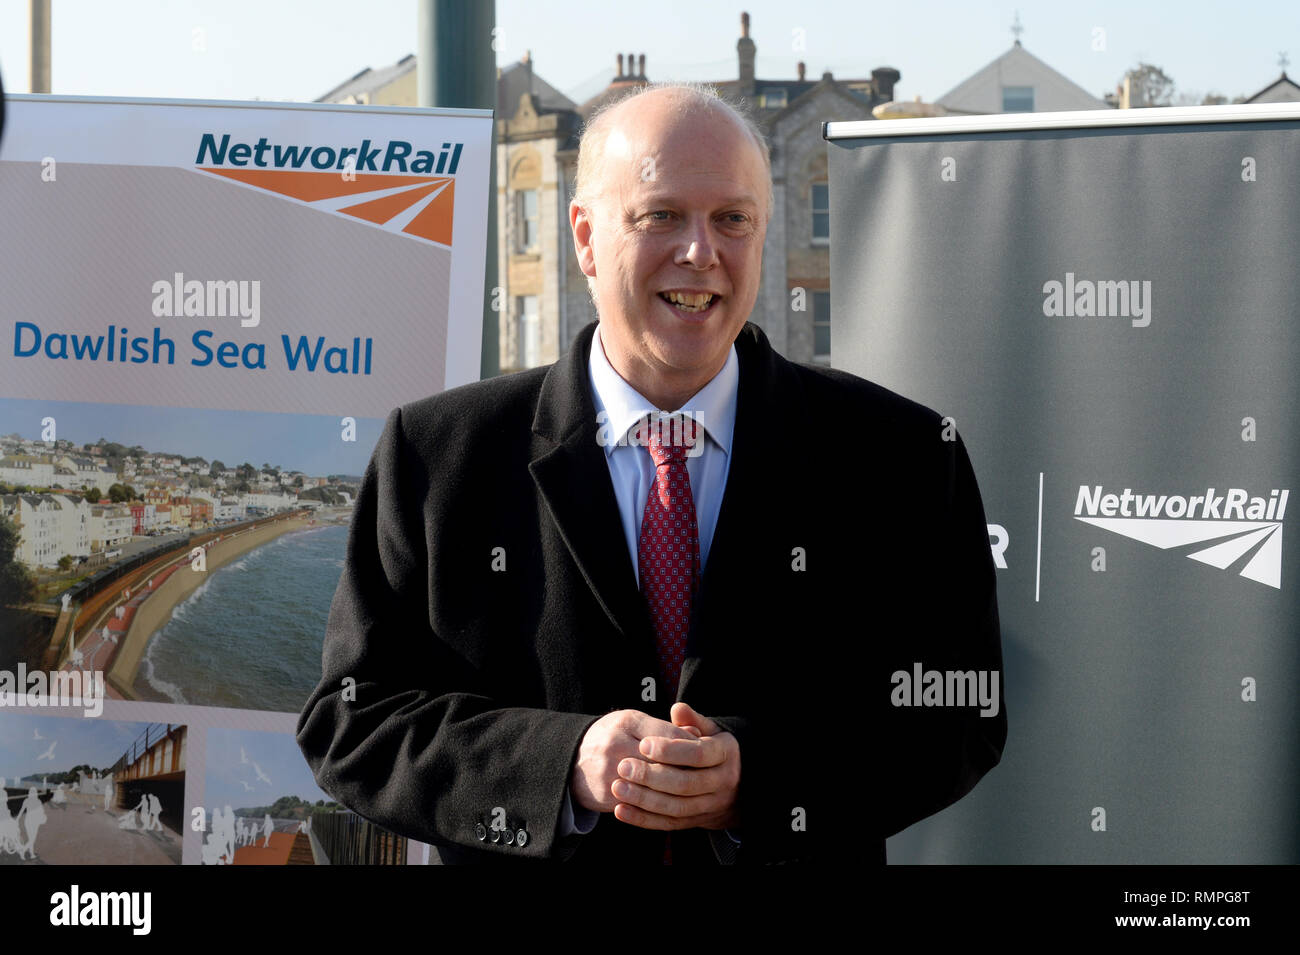 Dawlish, UK. 15th Feb, 2019. 15/02/2019  MP Chris Grayling visiting Dawlish. - Photo mandatory by-line: Andy Styles - Tel: 01626 872731 - Mobile: 07834214253 TQAS20190215B-009_C Credit: Andy Styles Photography/Alamy Live News - Stock Image